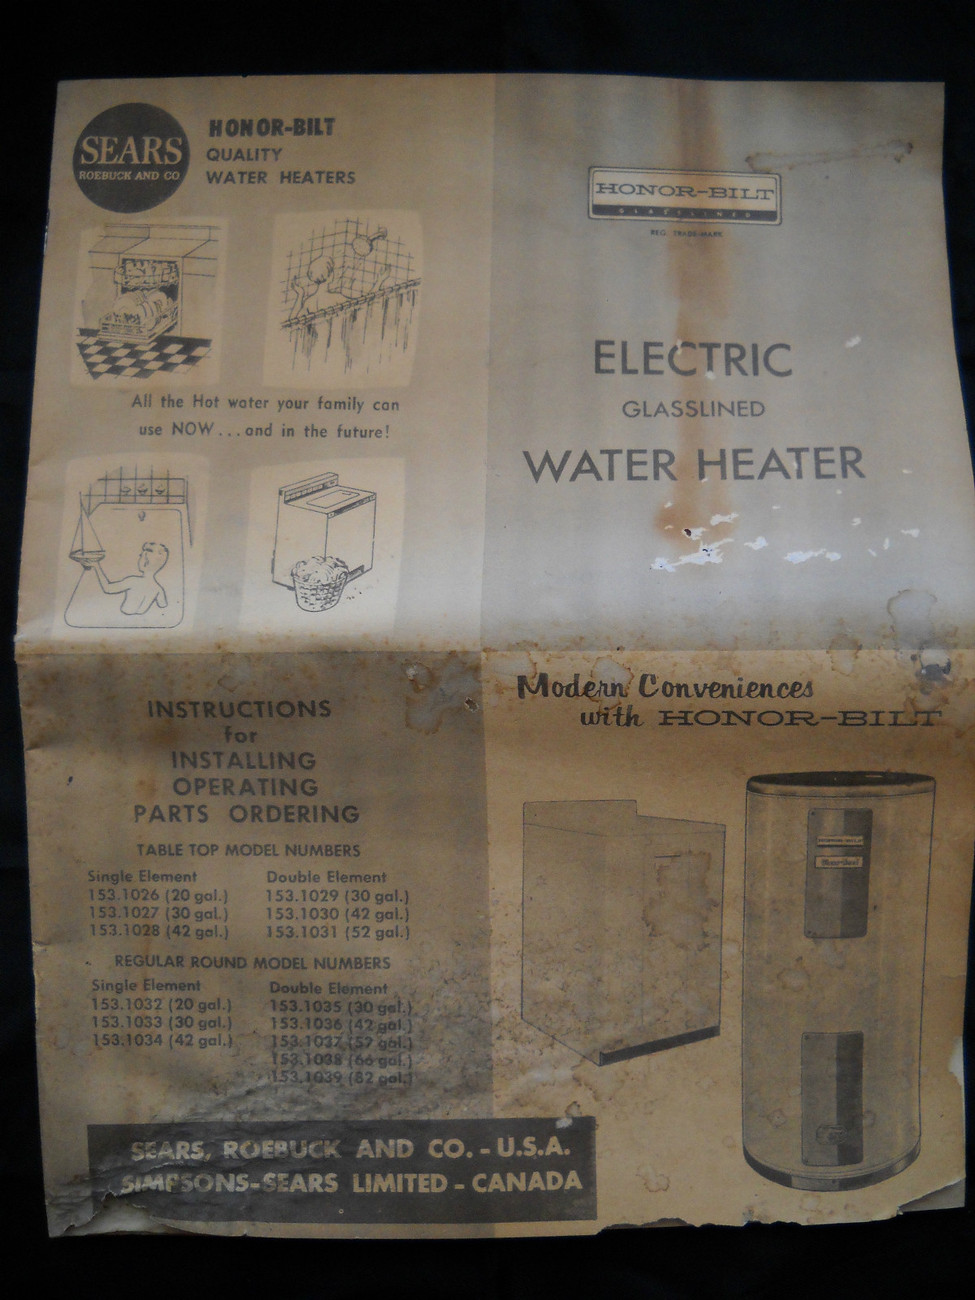 Vintage Sears Roebuck And Co. Honor Bilt and 50 similar items on water heater thermostat diagram, water heater exploded view, water heater lighting, water heater vent diagram, water heater system diagram, titan water heater diagram, water heater ladder diagram, water heater breaker box, water heater electrical schematic, water heater interior diagram, water heater repair, water heater exhaust diagram, water heater frame, heat pump water heater diagram, water heater cutaway view, water heater installation, water heater radiator diagram, water heater controls diagram, water heater transformer, water heater fuse replacement,